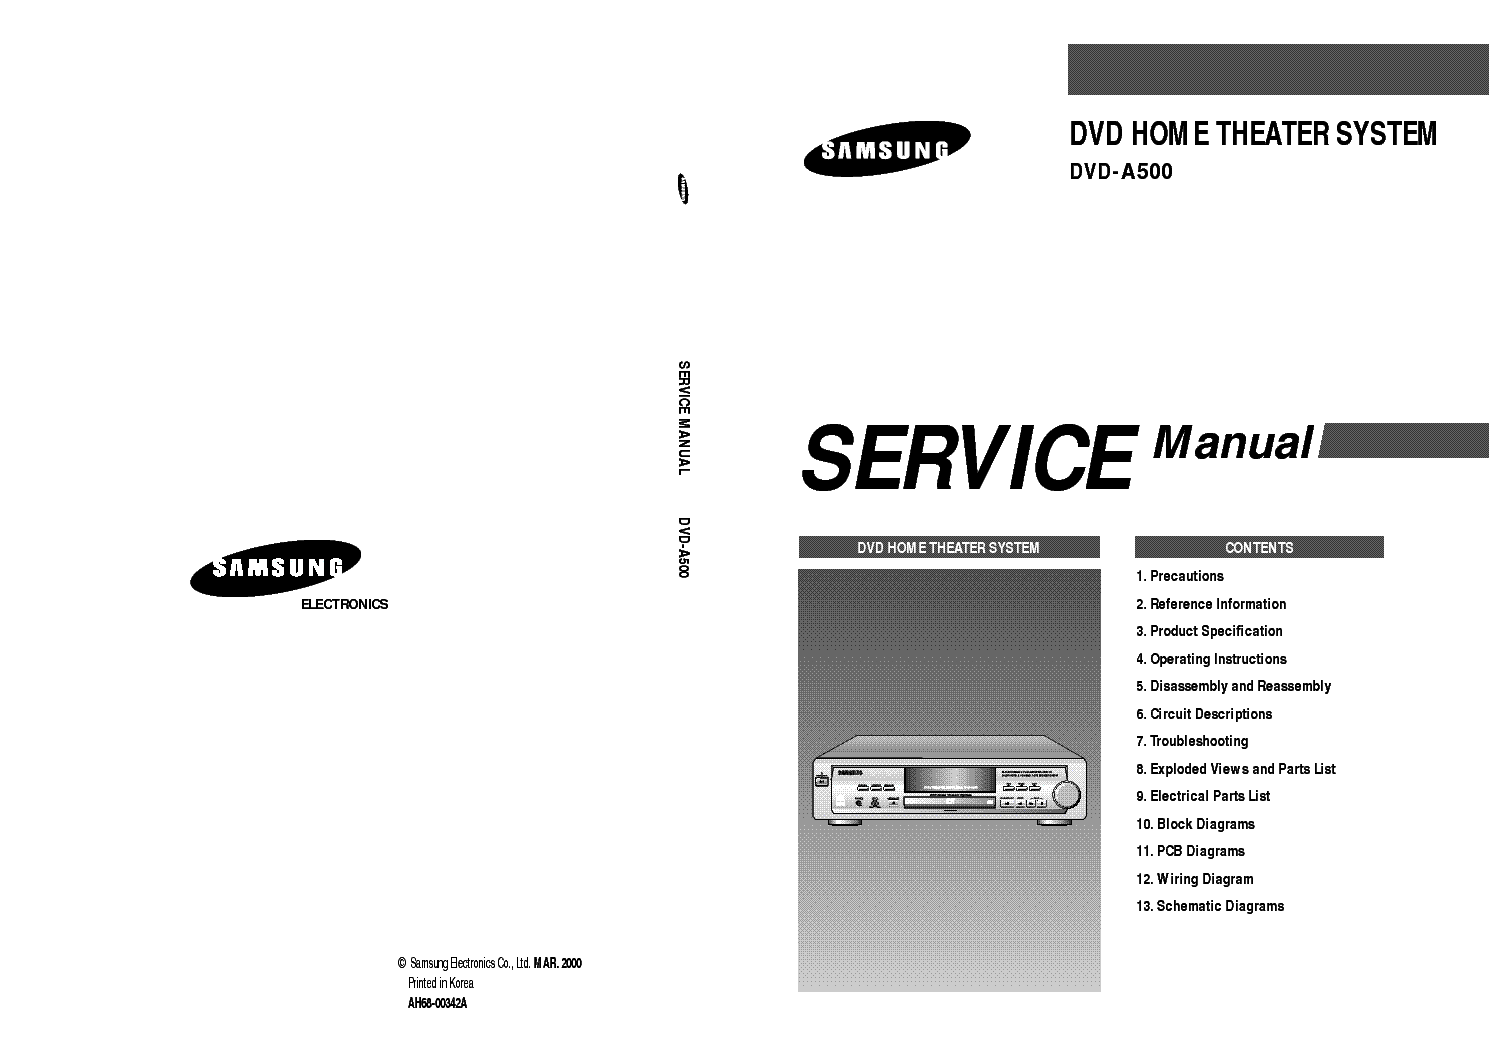 ford service information dvd